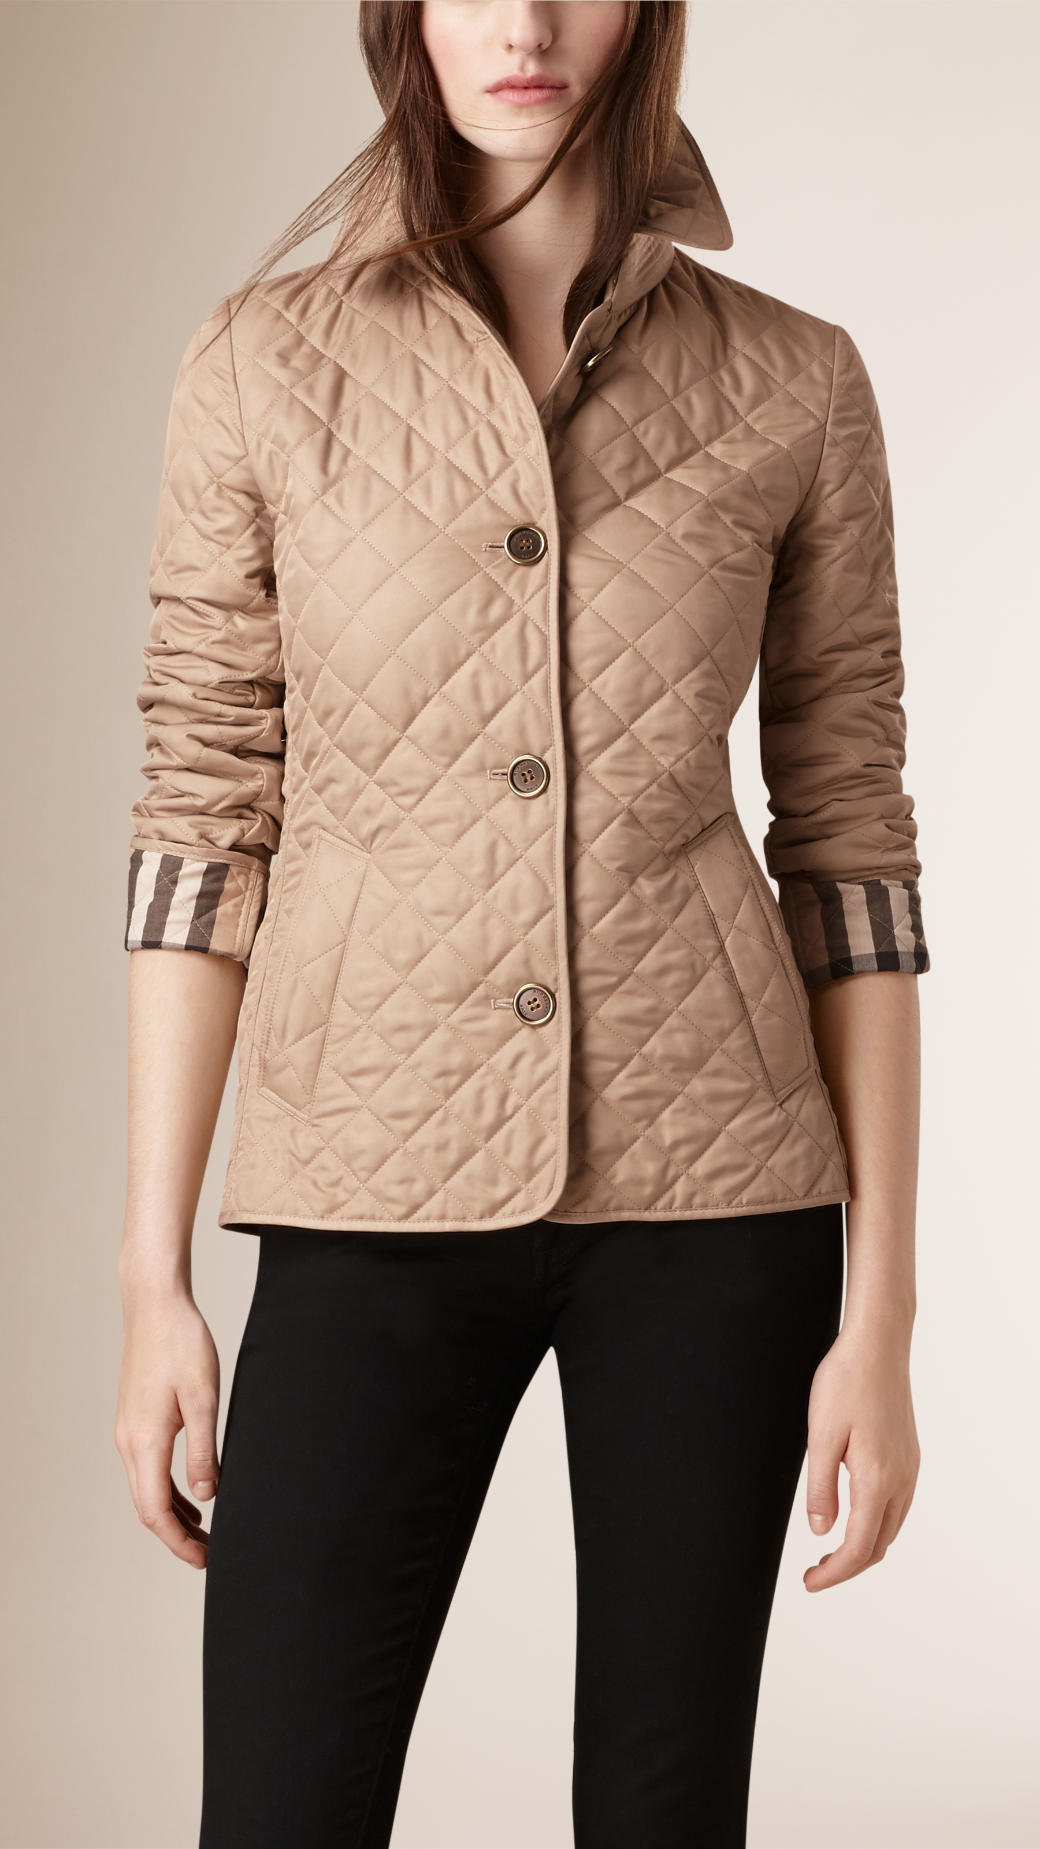 Burberry Diamond Quilted Jacket in Natural | Lyst : diamond quilted jacket burberry - Adamdwight.com